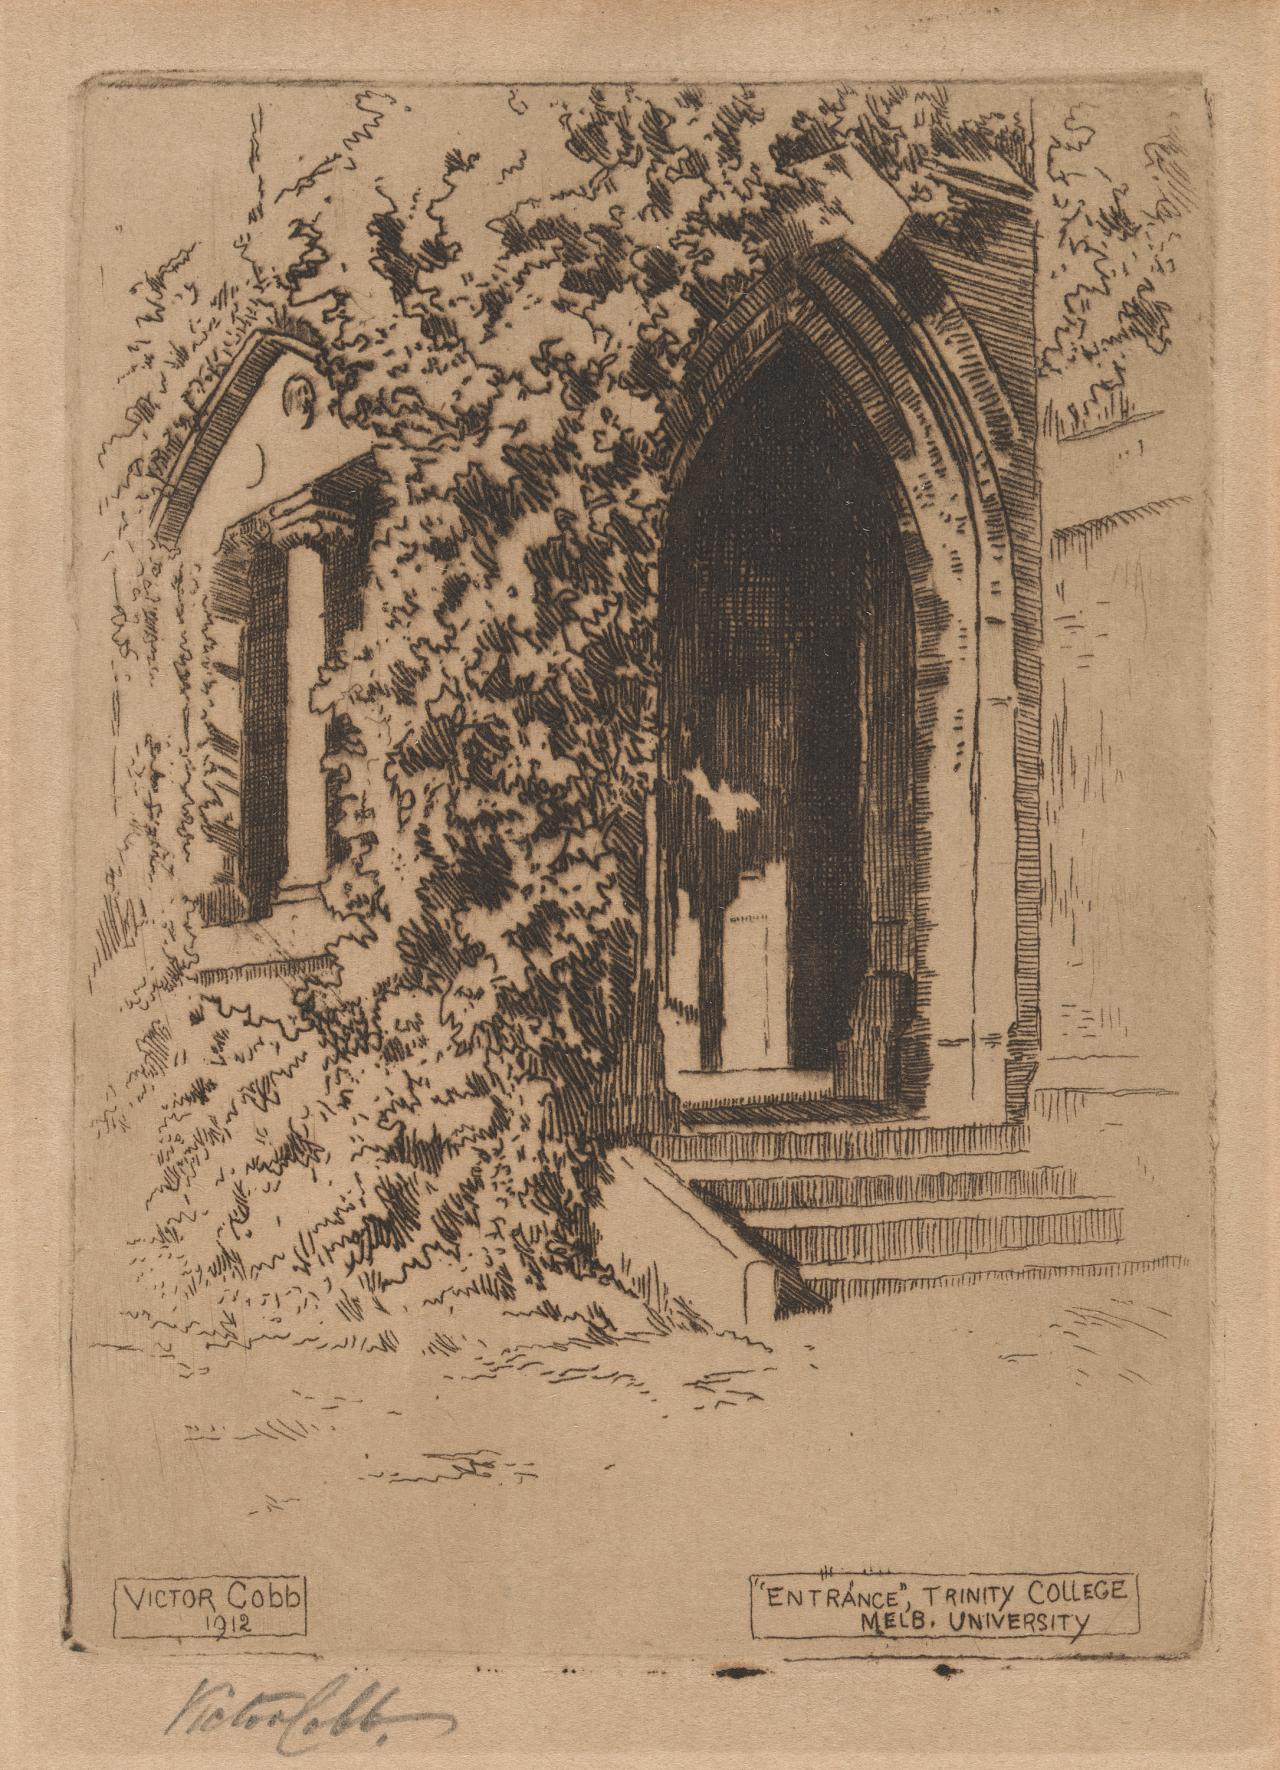 Entrance, Trinity College, Melbourne University | Victor COBB | NGV